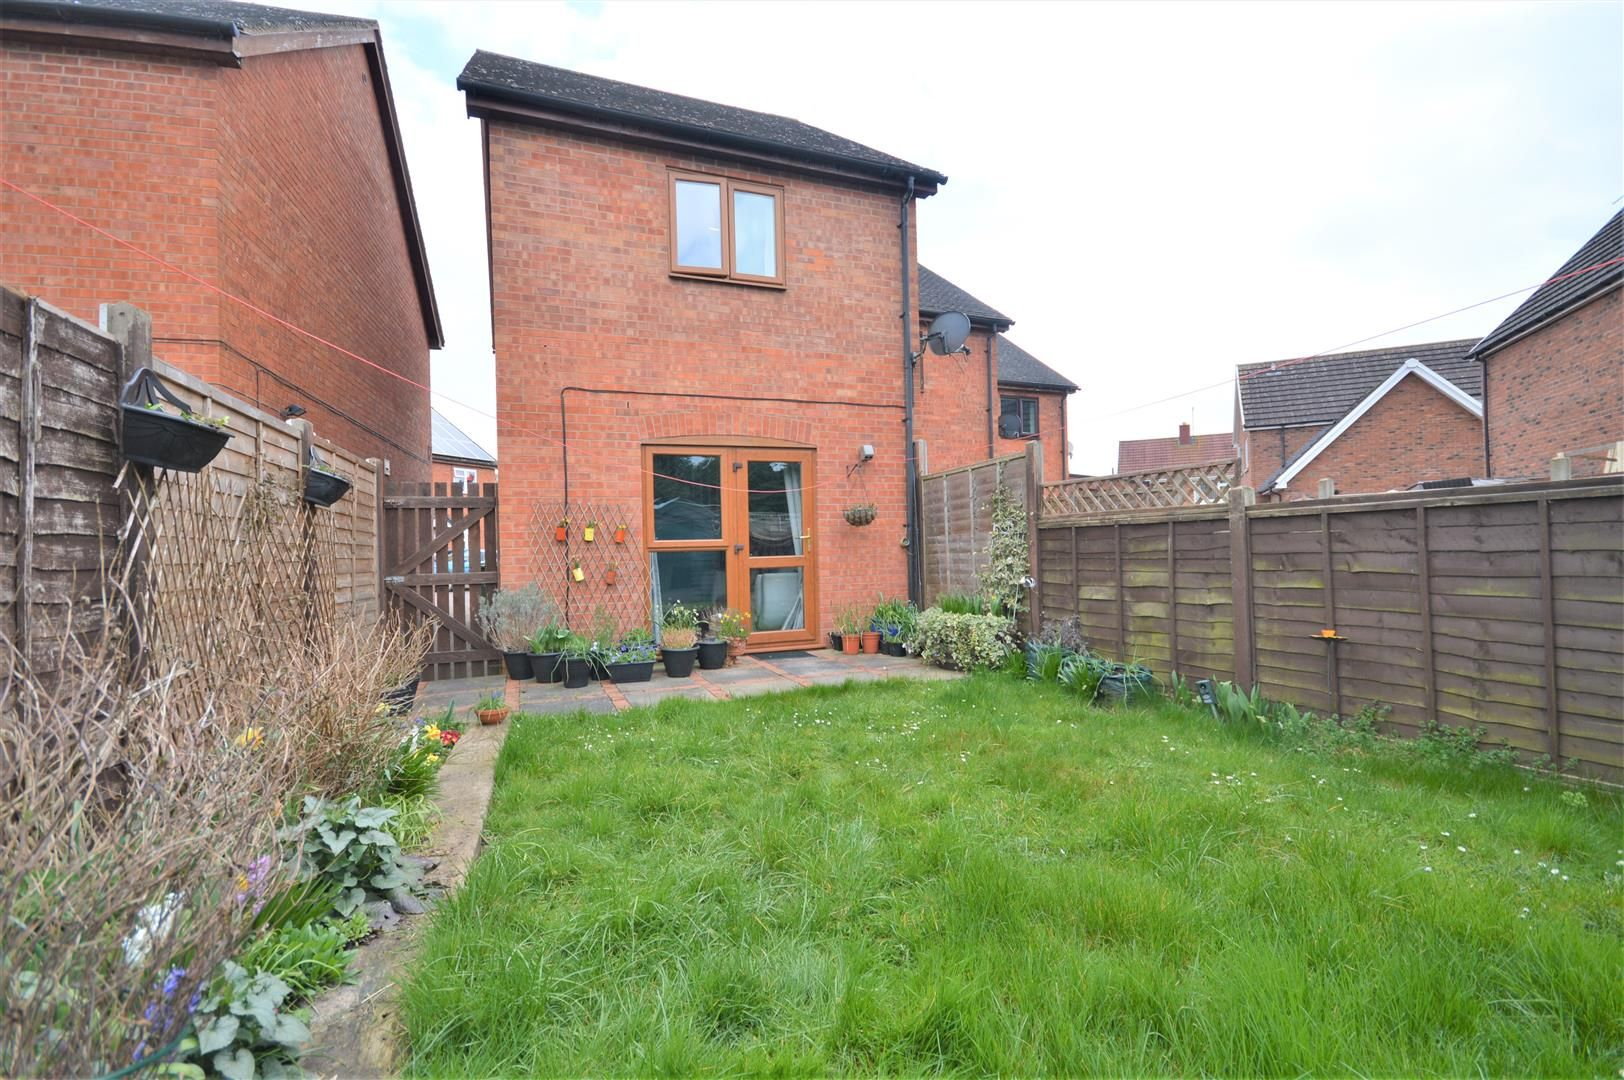 2 bed end of terrace for sale in Lower Bullingham 10